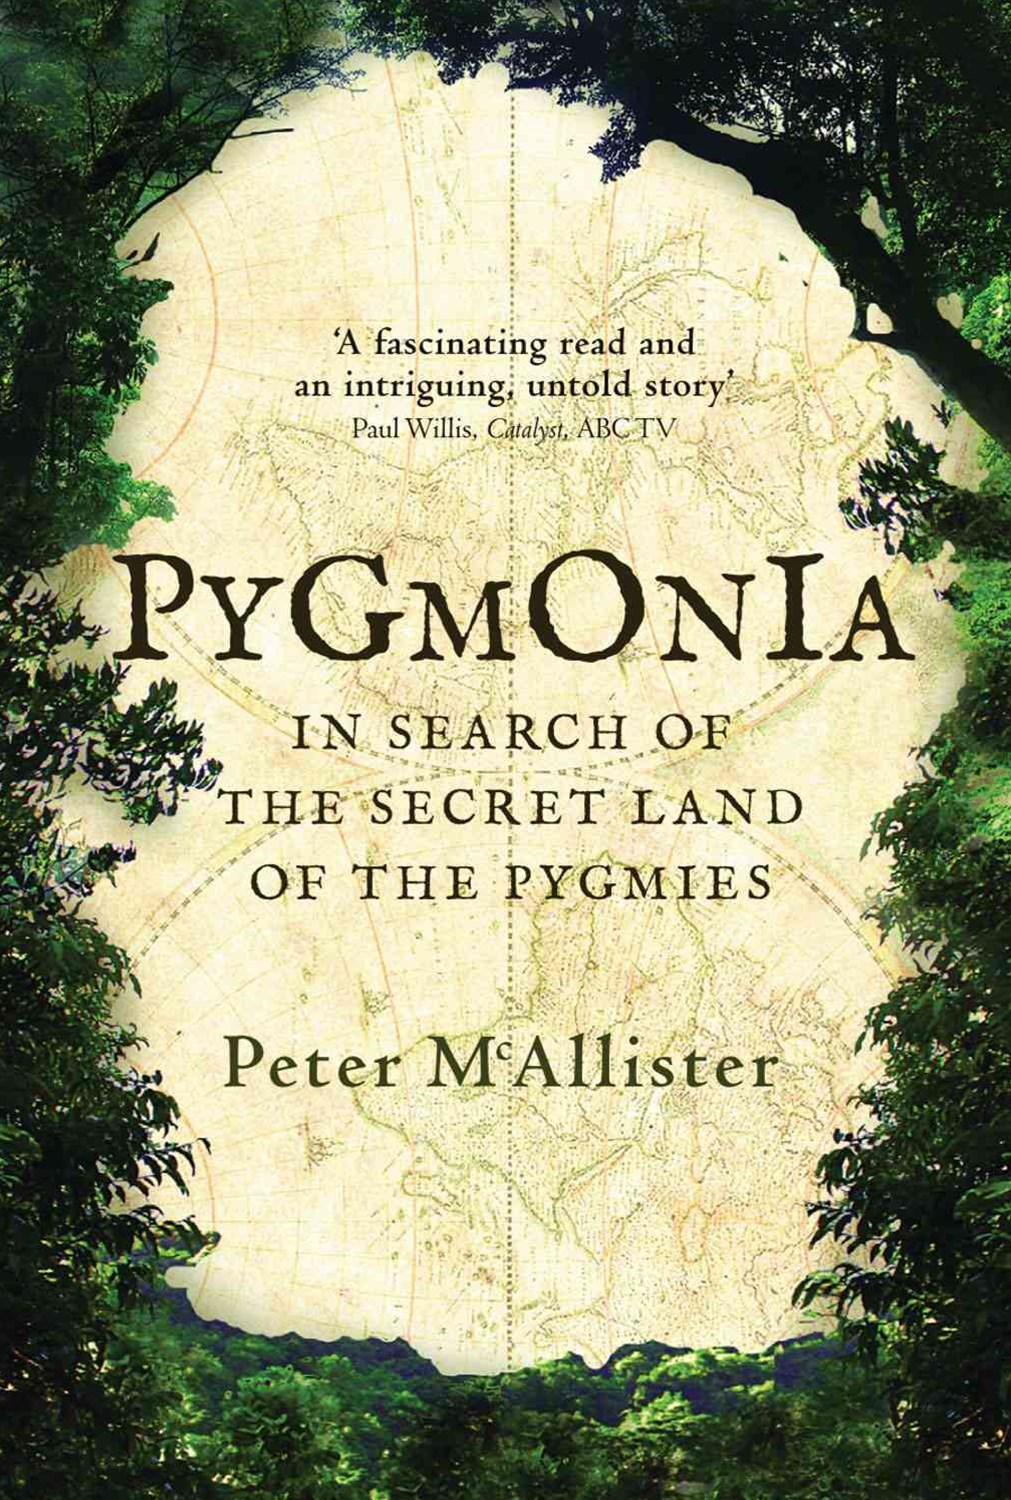 Pygmonia: In Search Of The Secret Land Of The Pygmies